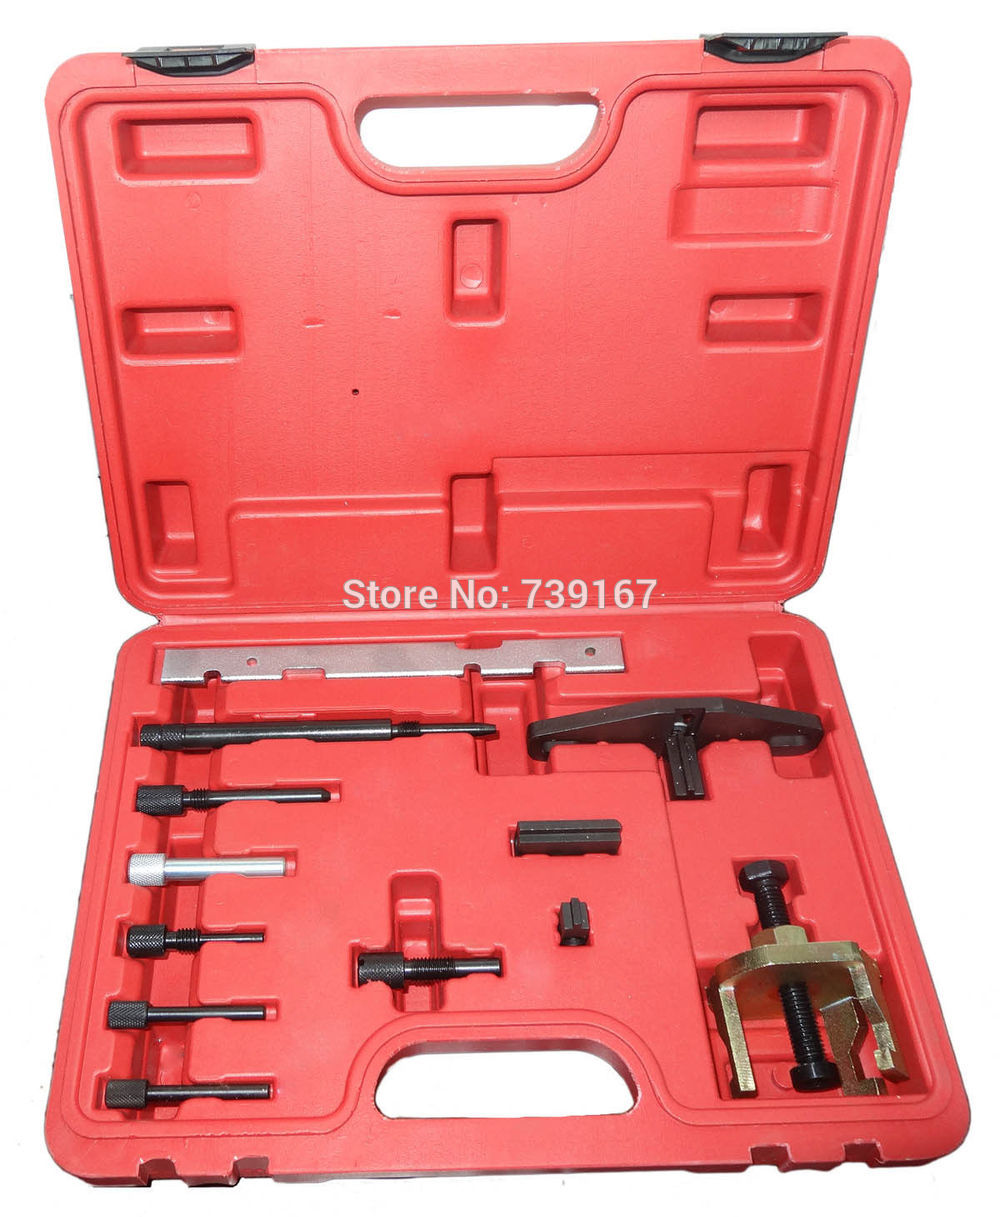 Engine Timing Camshaft Locking Setting Tool Kit For Ford Mazda Focus Sierra Mondeo ST0092 engine setting locking combination kit master engine timing tool set fits for ford 1 4 1 6 ti vct tdci 1 8 2 0 16v 2 2 tdci